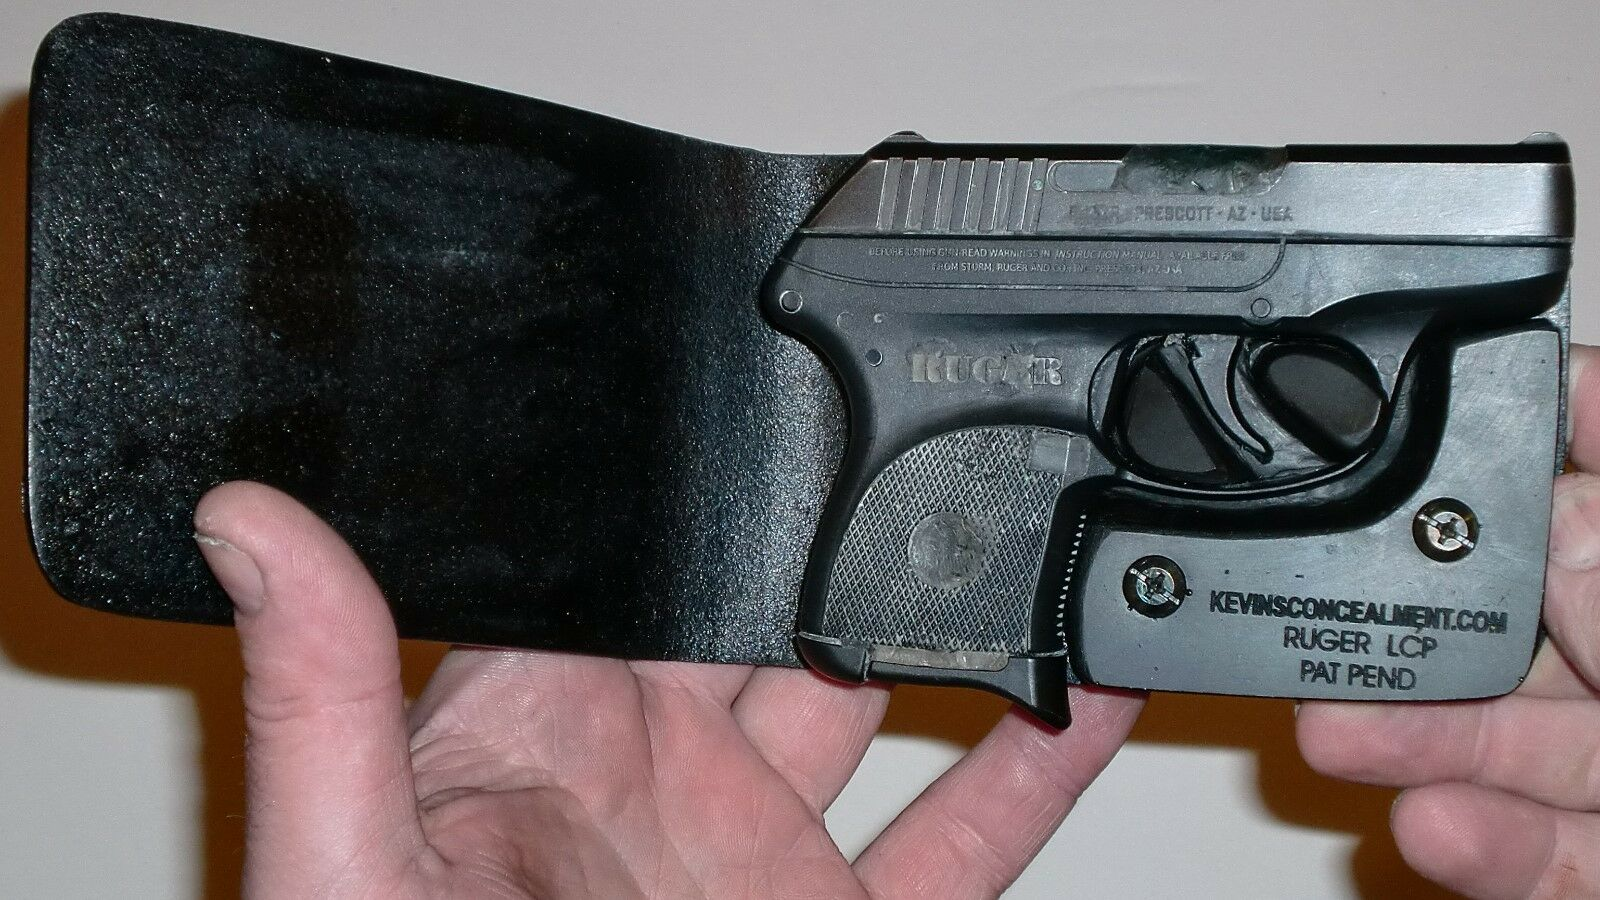 Wallet Holster For Full Concealment - Ruger LCP - Kevin's Concealment